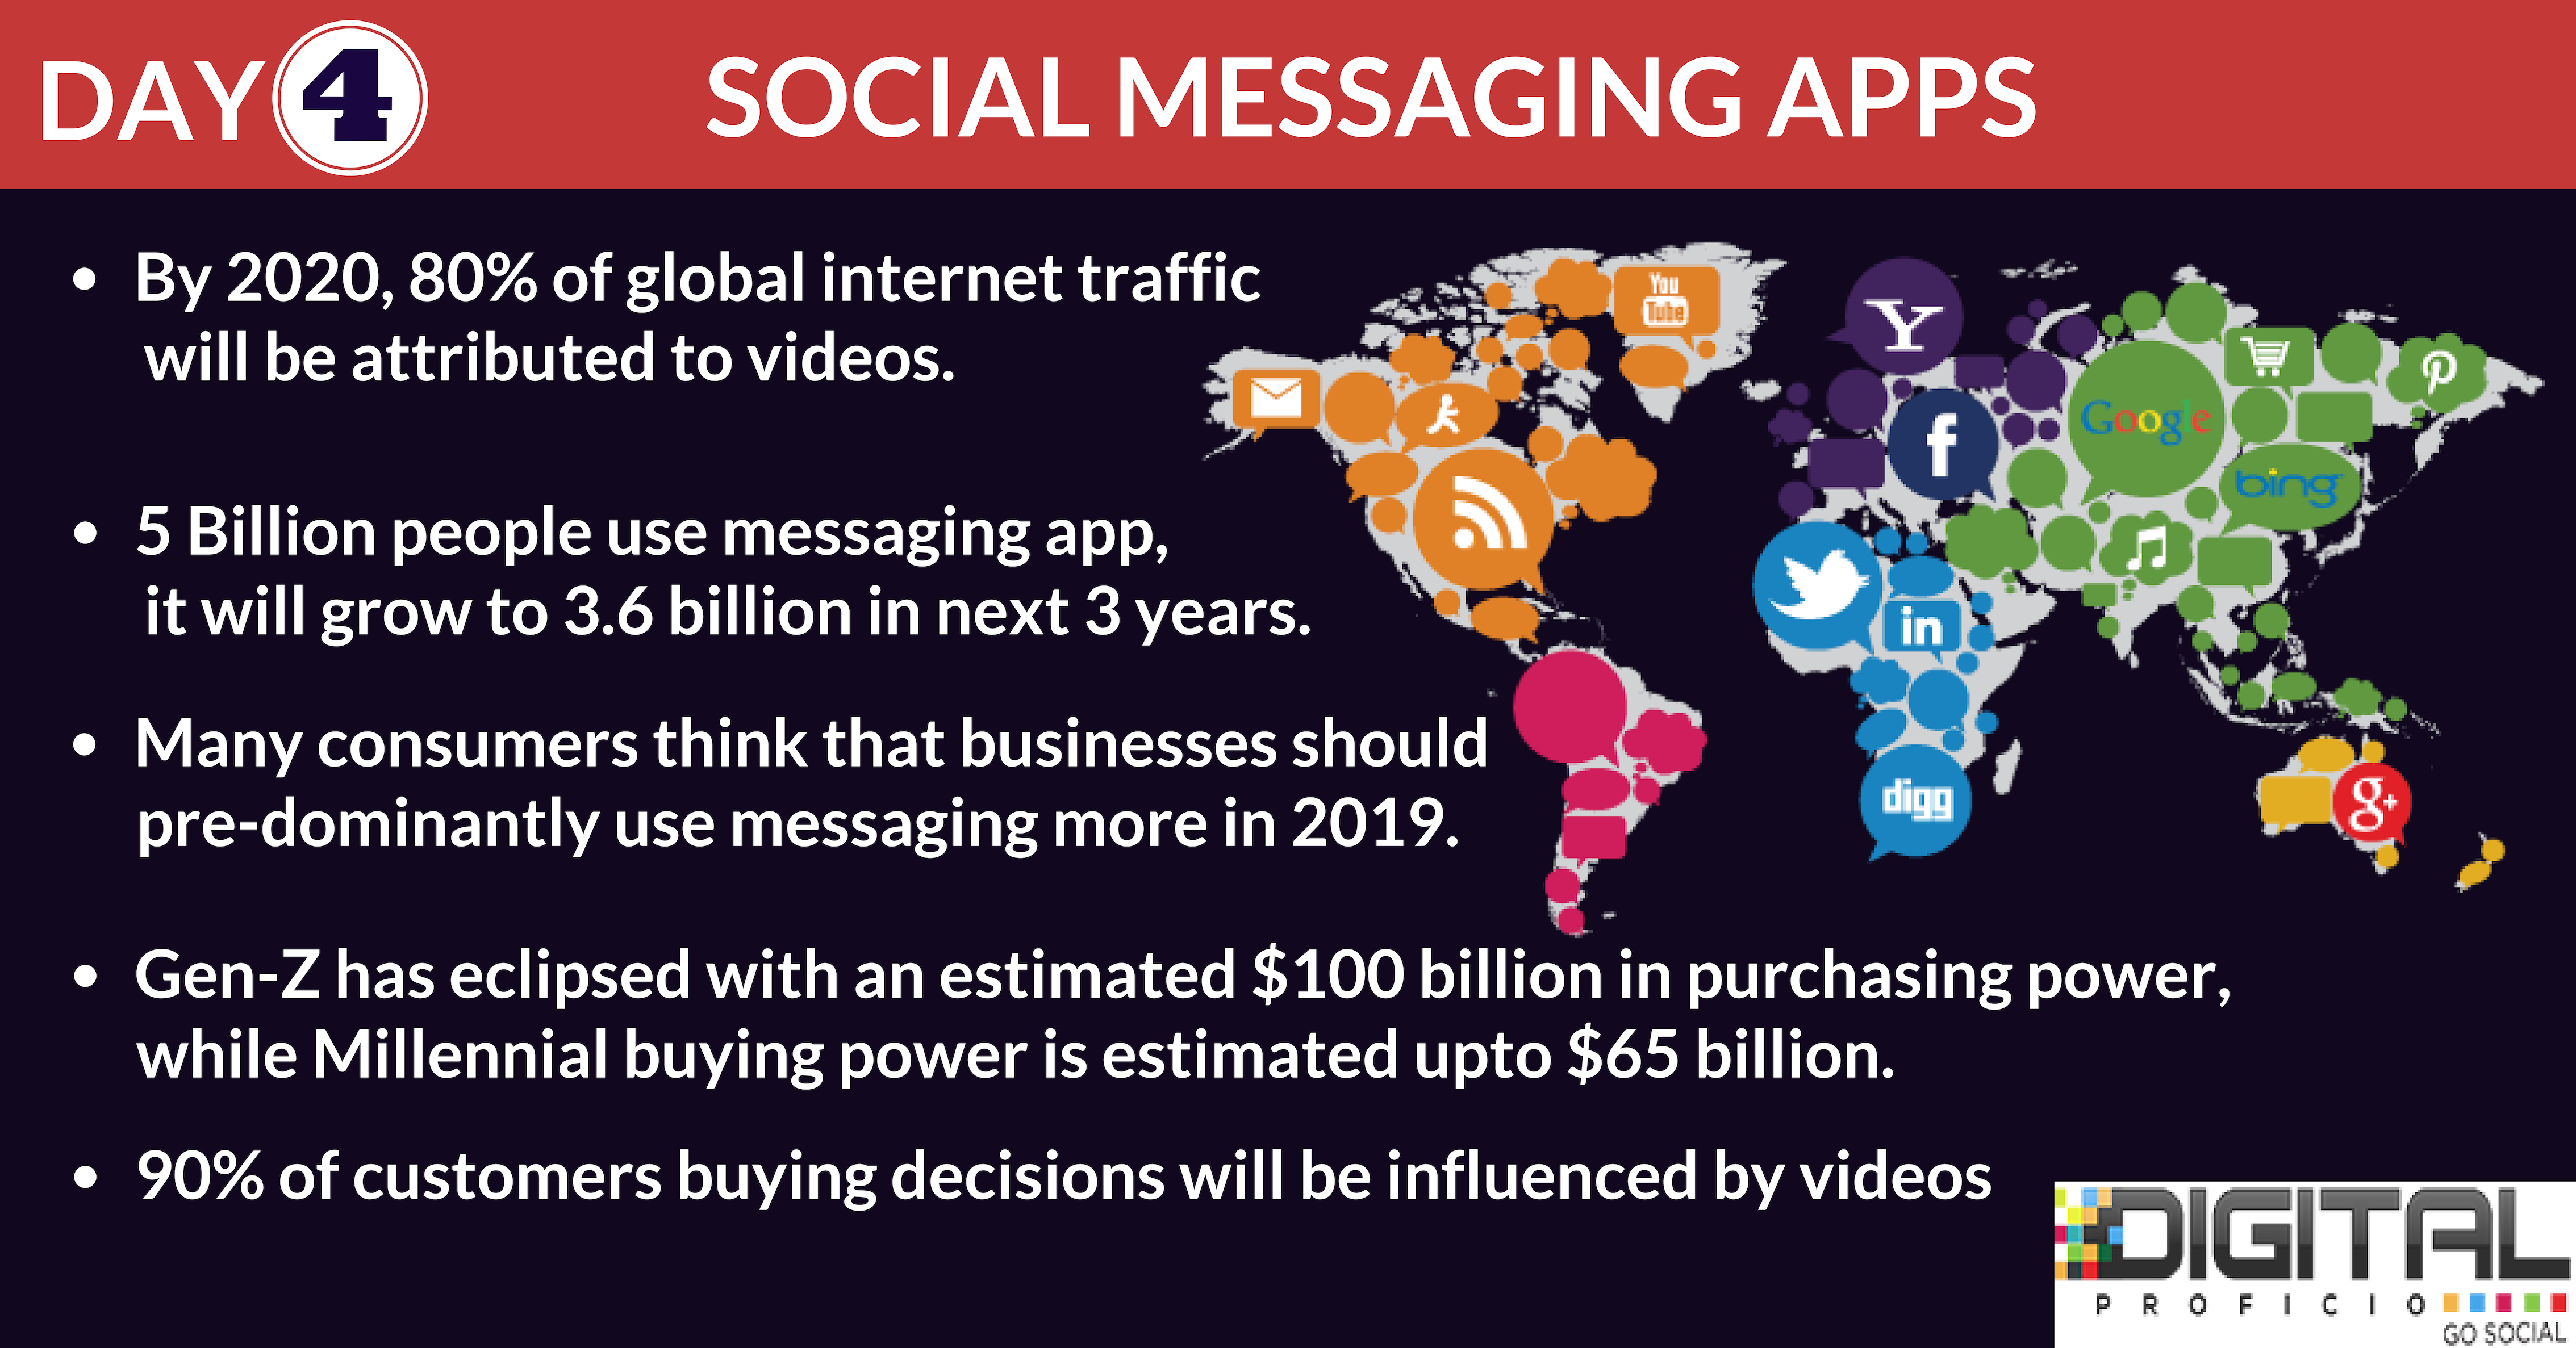 Day 4 Social Messaging Apps As We Enter 2019 We Feel Your New Year Resolution Should Be Focused On Online Digital Marketing Messaging App Digital Marketing